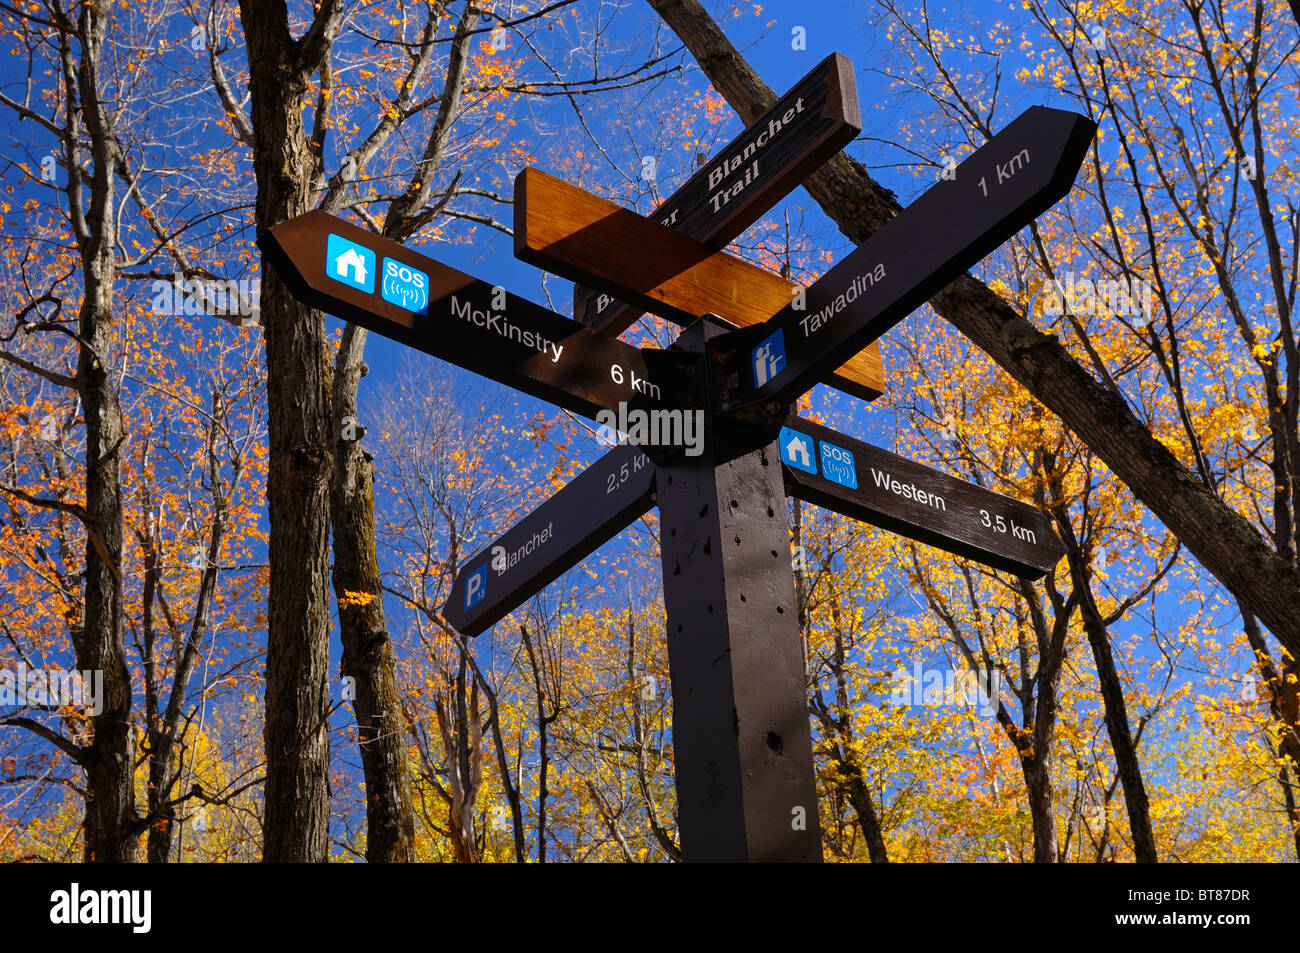 Blanchet Trail marker with distances to Meech Lake beach and Tawadina lookout Gatineau Hills Park Quebec Canada - Stock Image